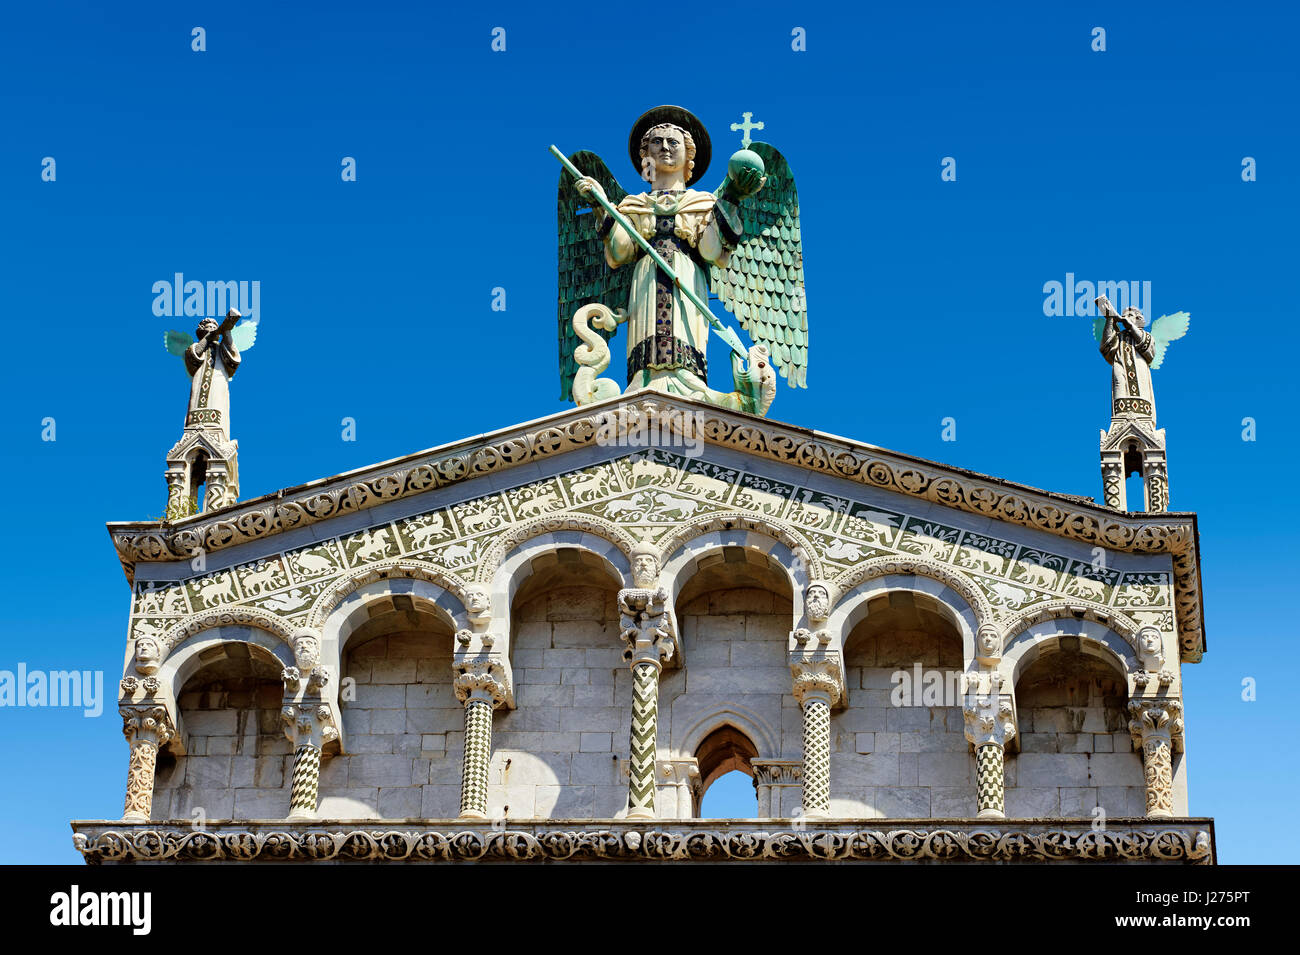 Close up of the statue of St Michele of the 13th century Romanesque facade of the San Michele in Foro,  Lucca, Italy - Stock Image